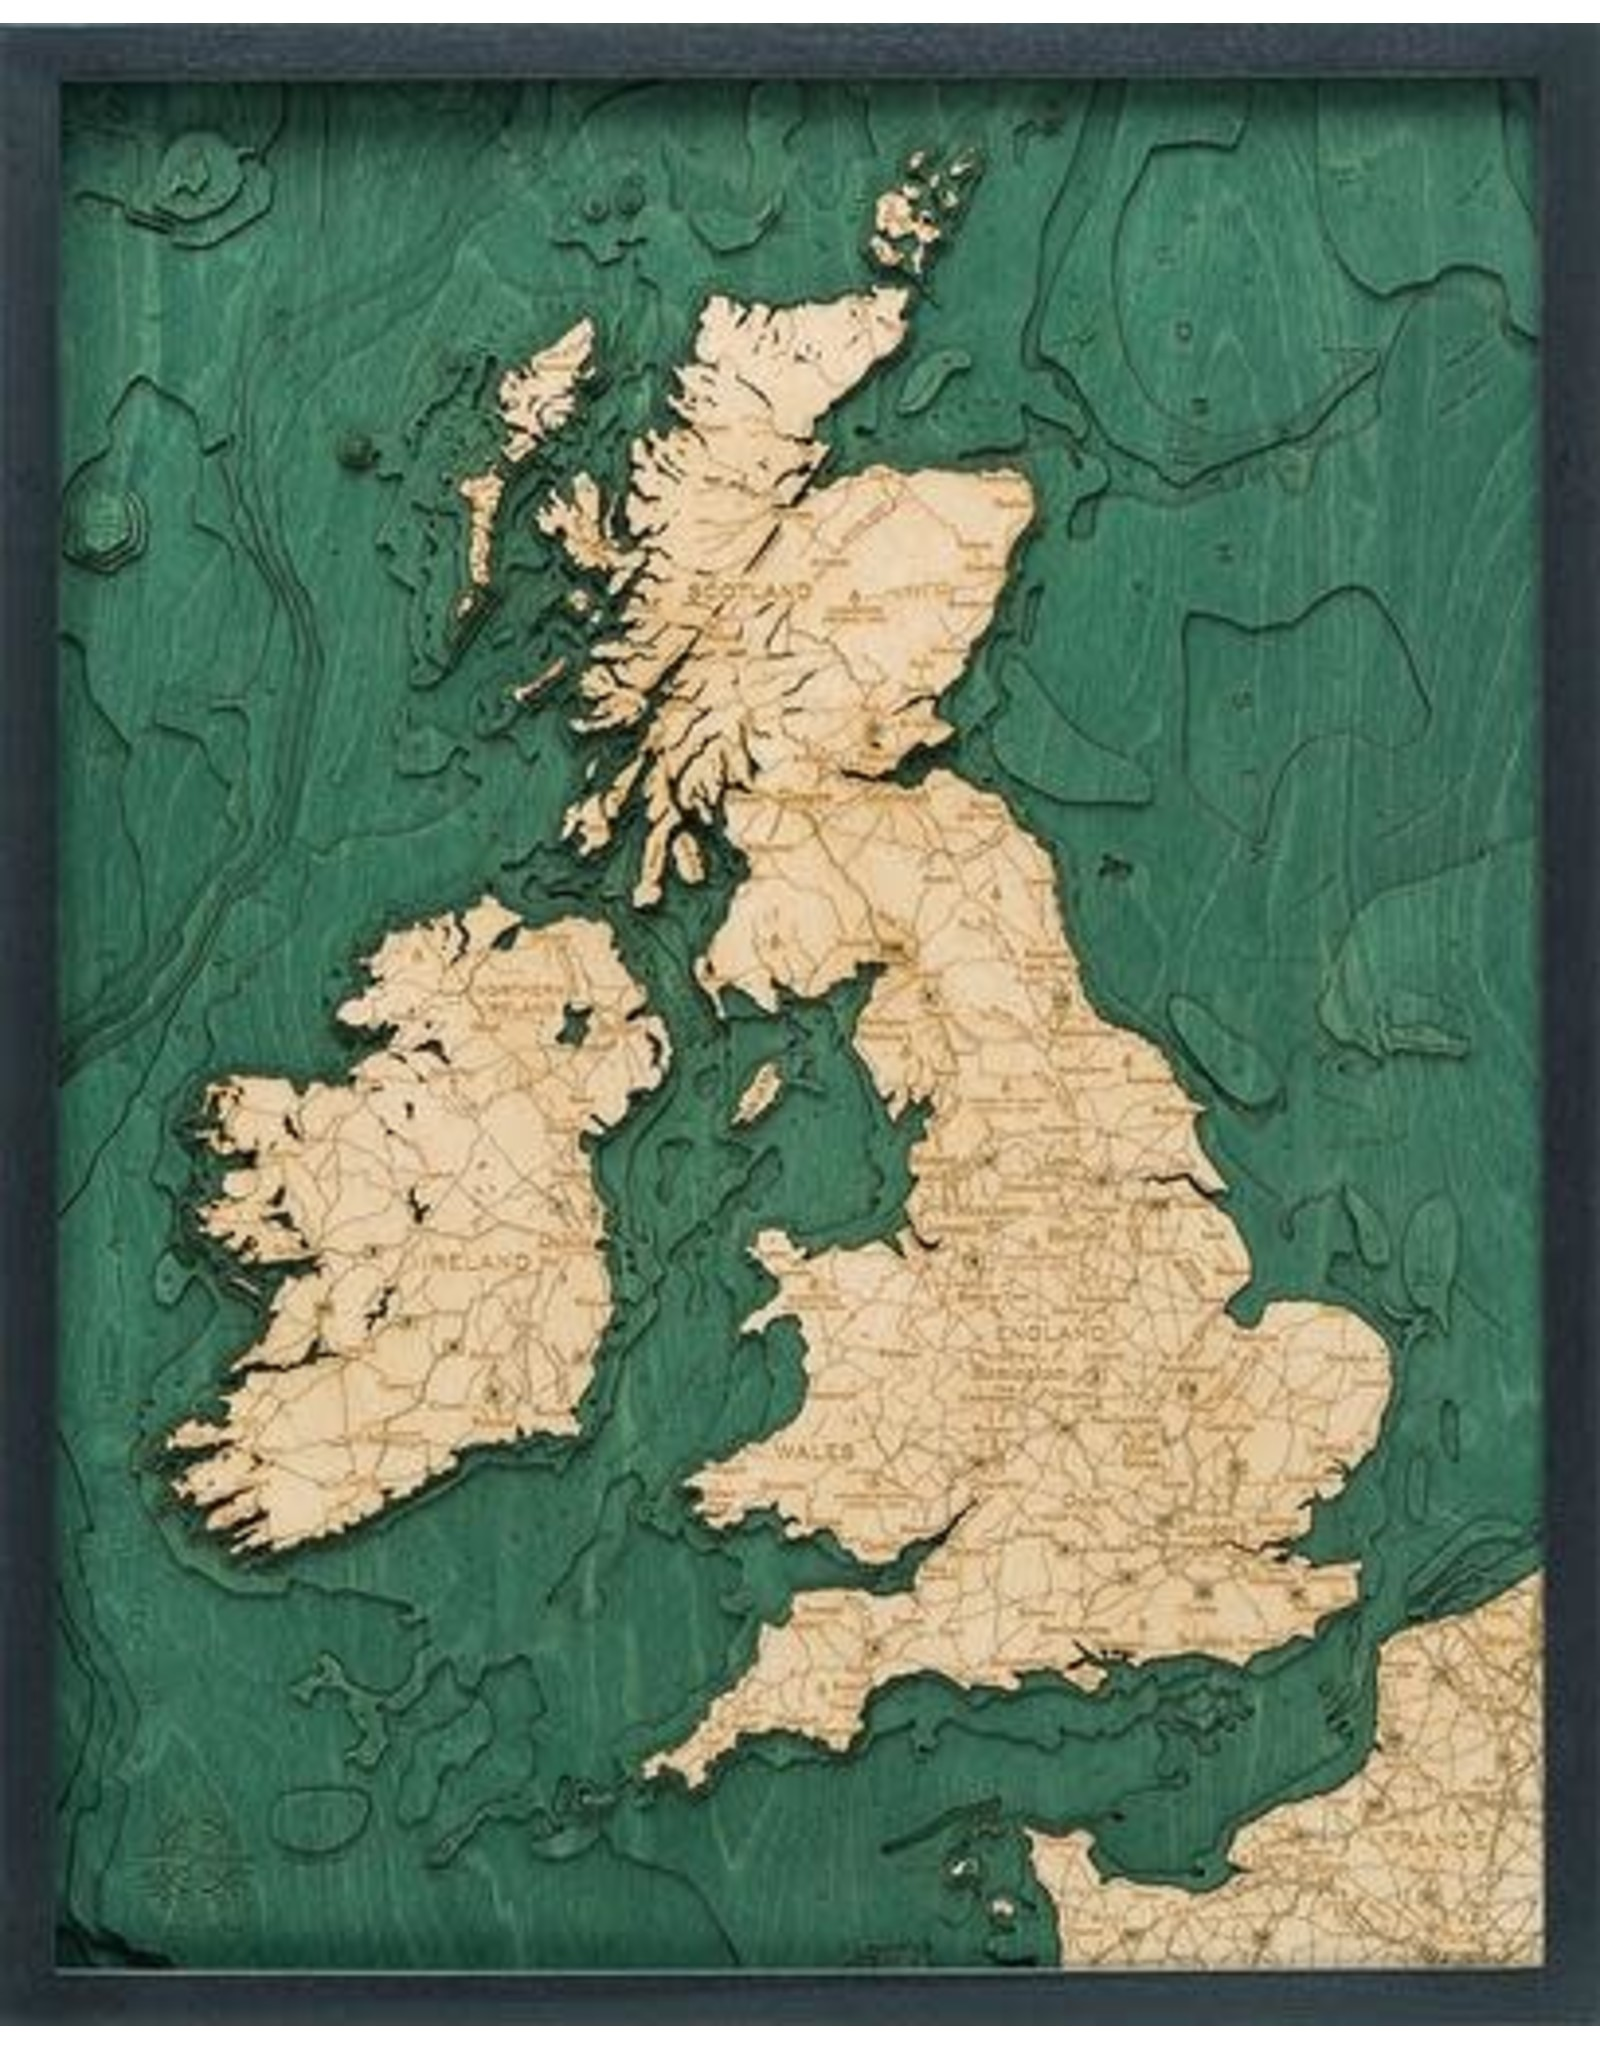 WoodCharts United Kingdom (Bathymetric 3-D Wood Carved Nautical Chart)